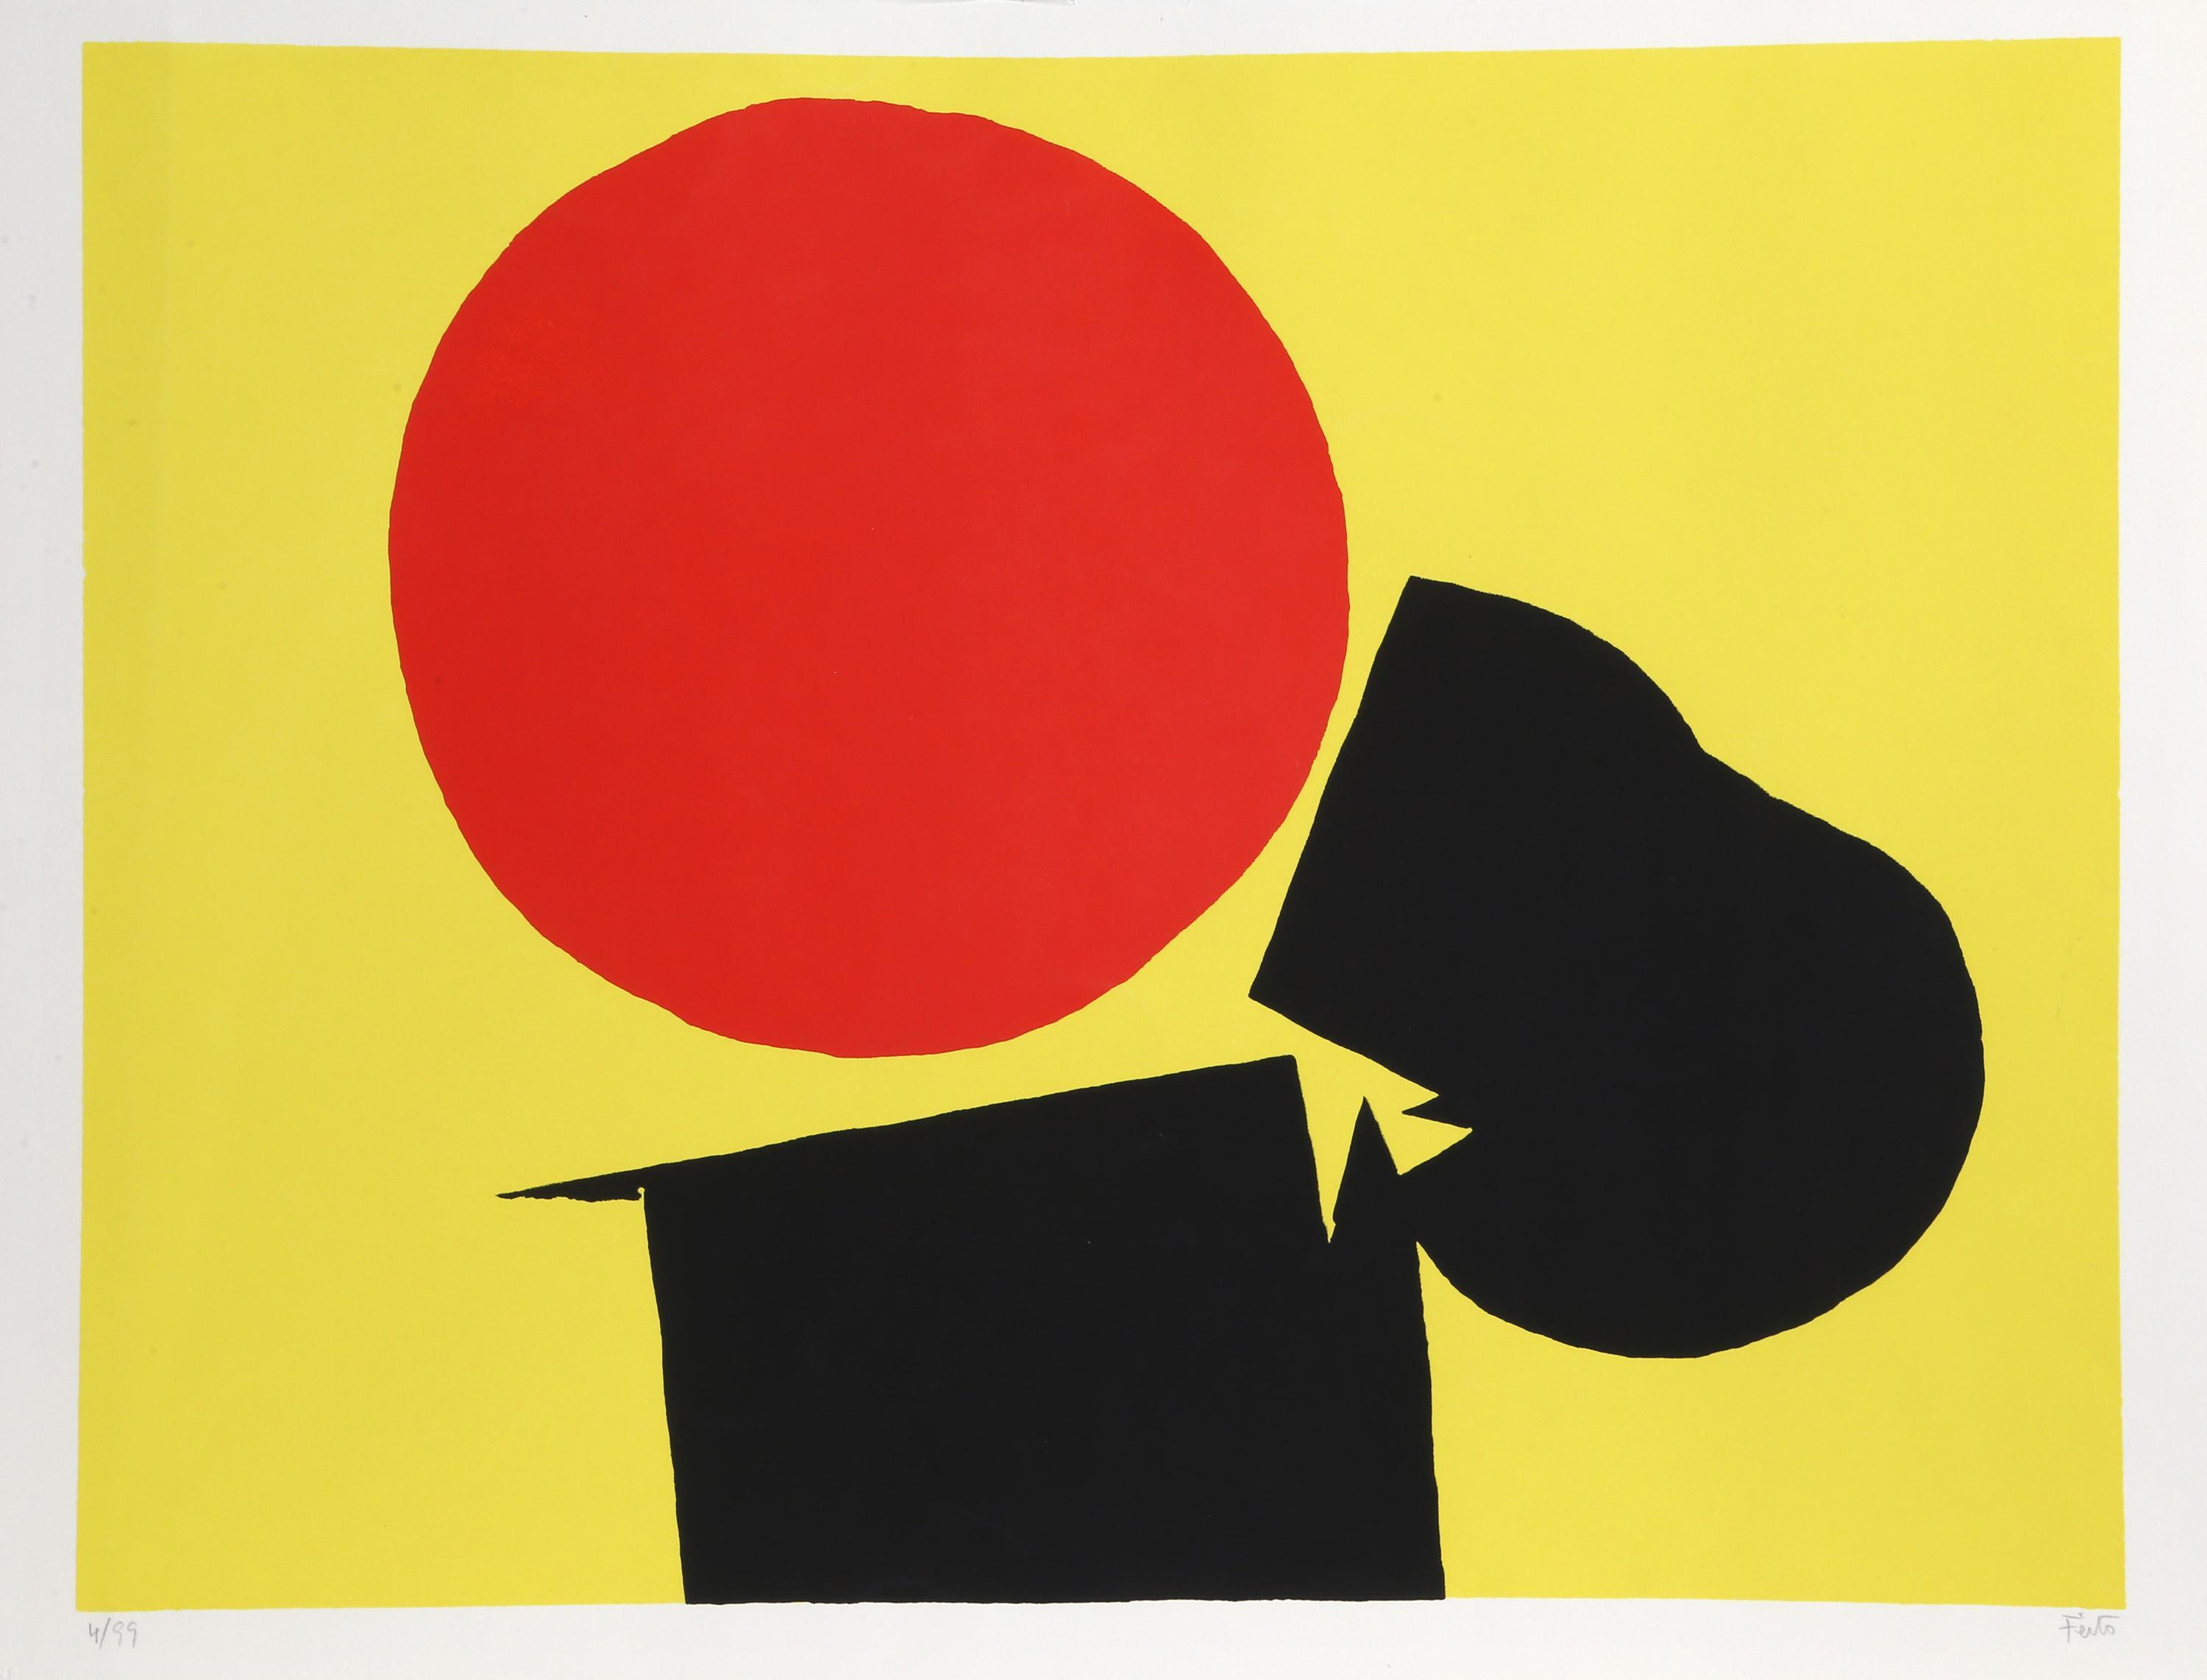 Luis Feito López, Abstract with Red Sun, Screenprint